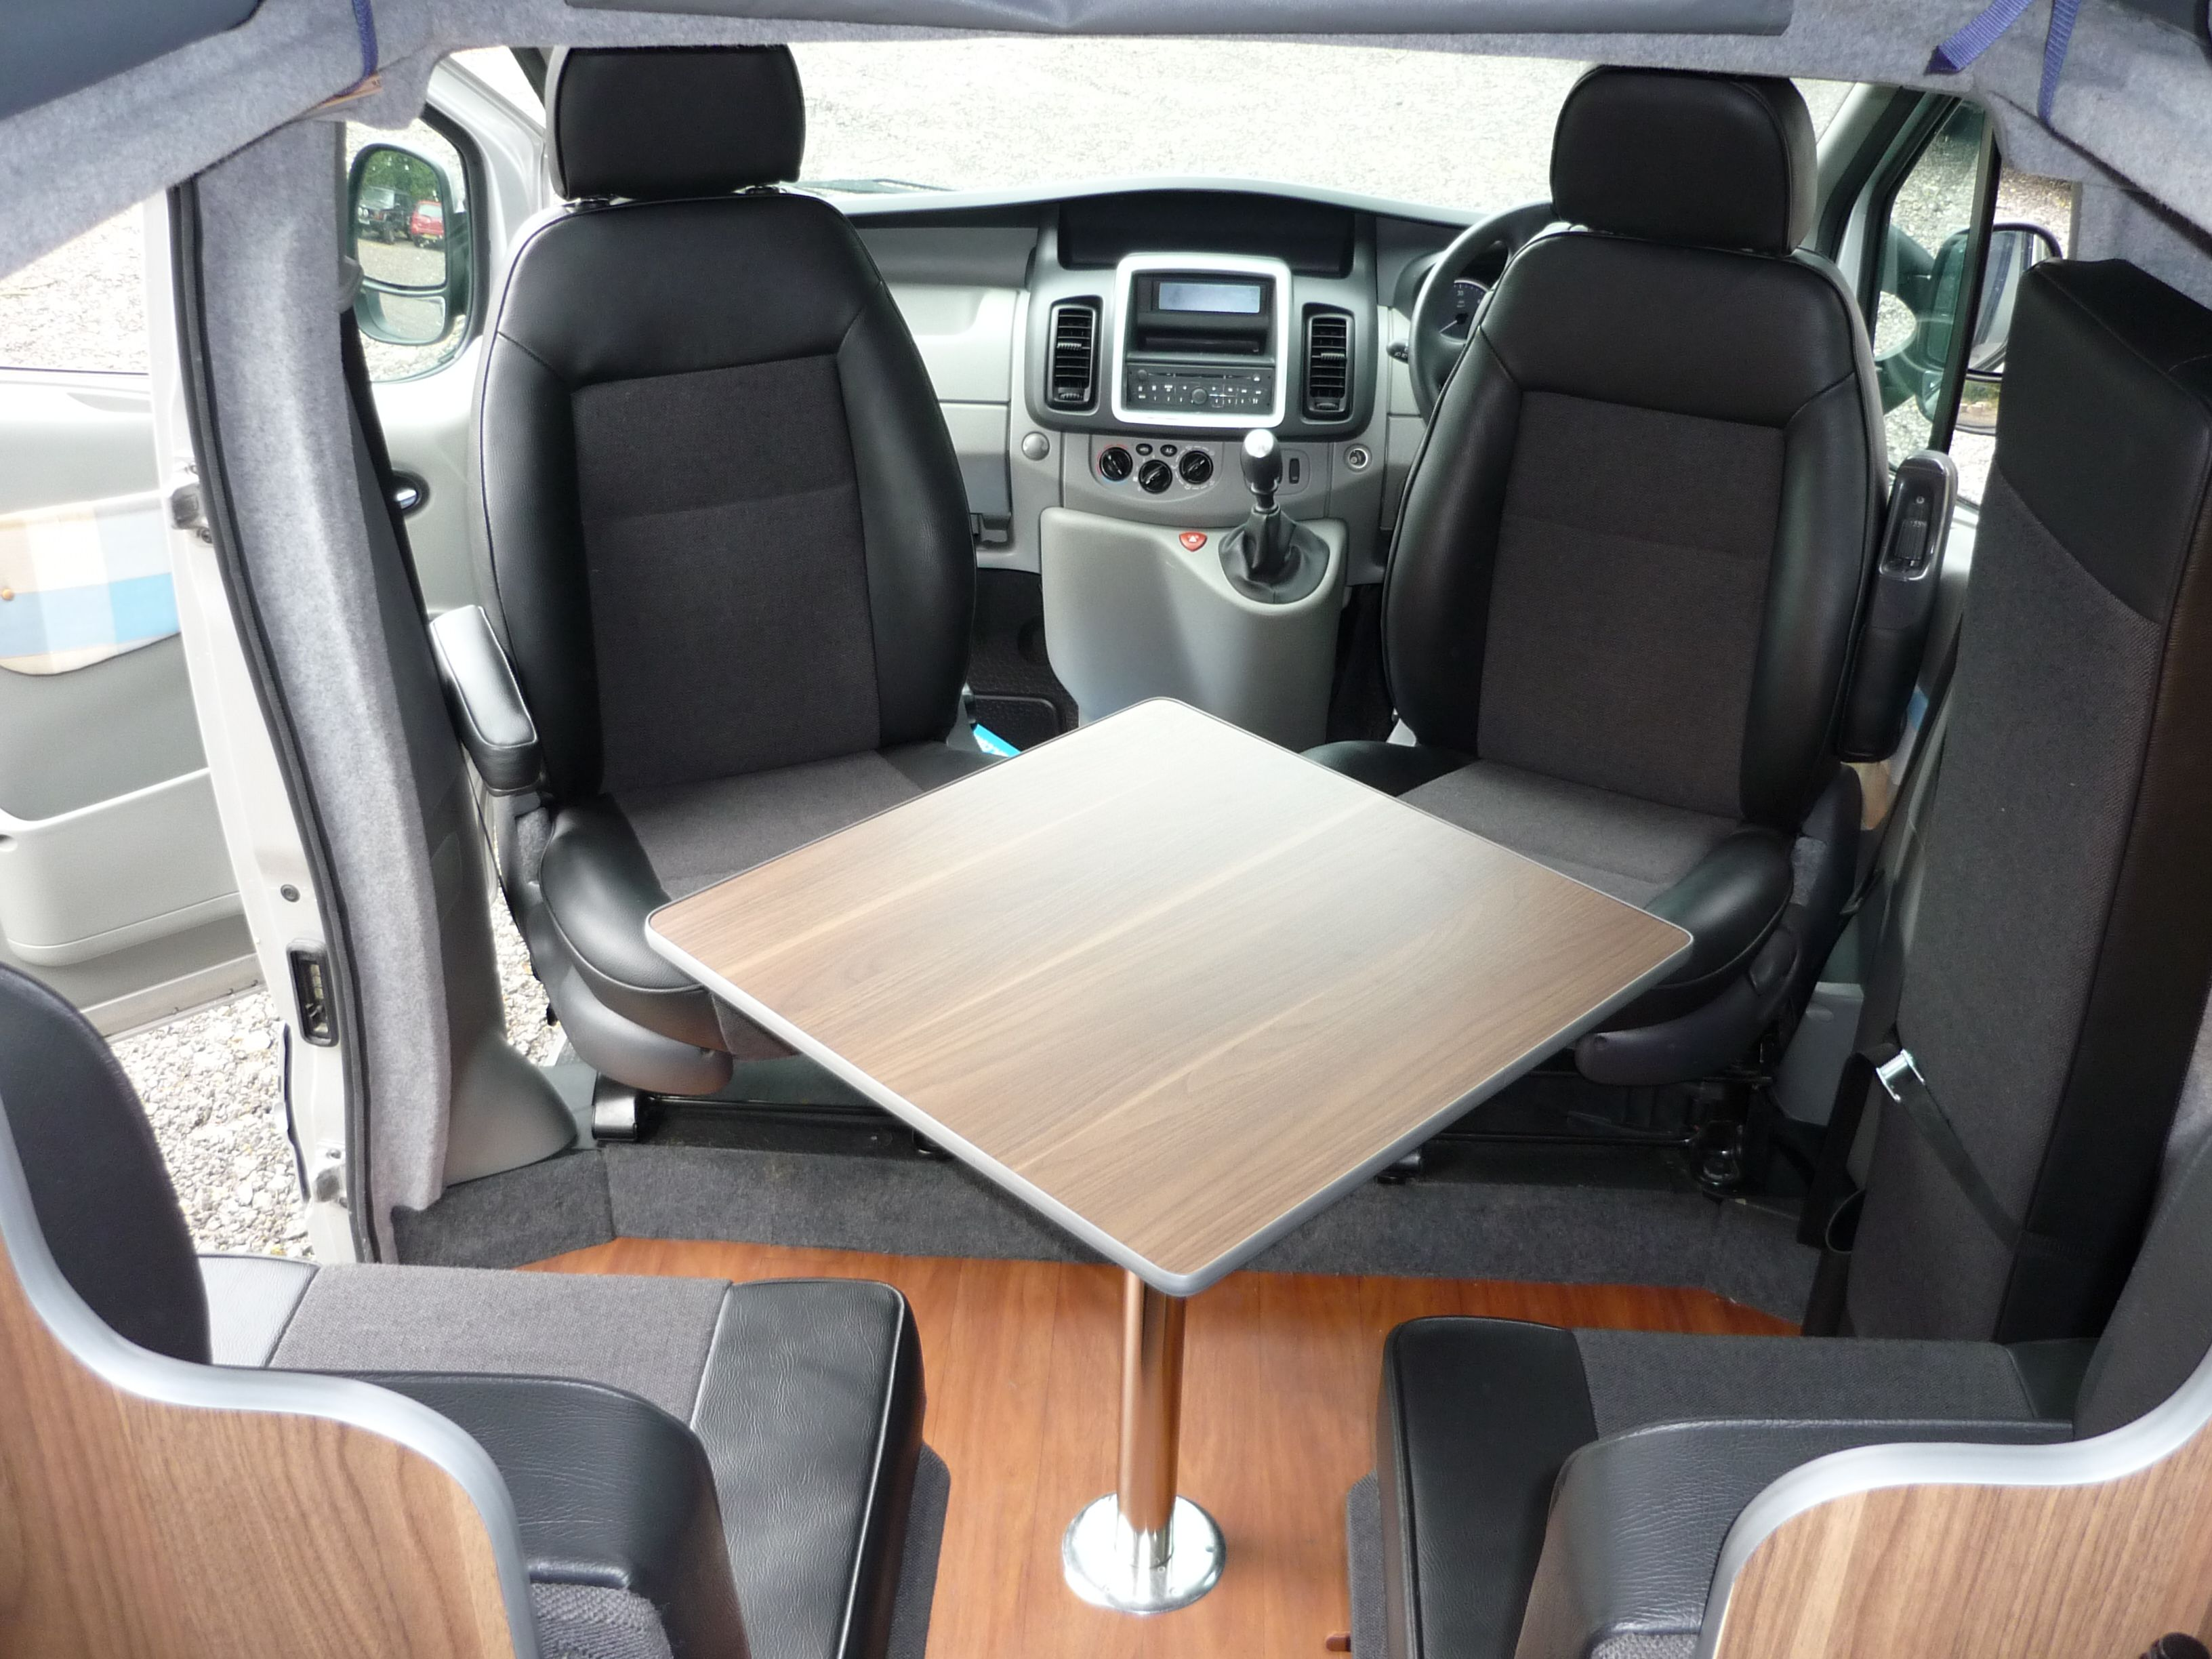 Campervan Conversion With Four Seats Around Table Including Two Swivel Front